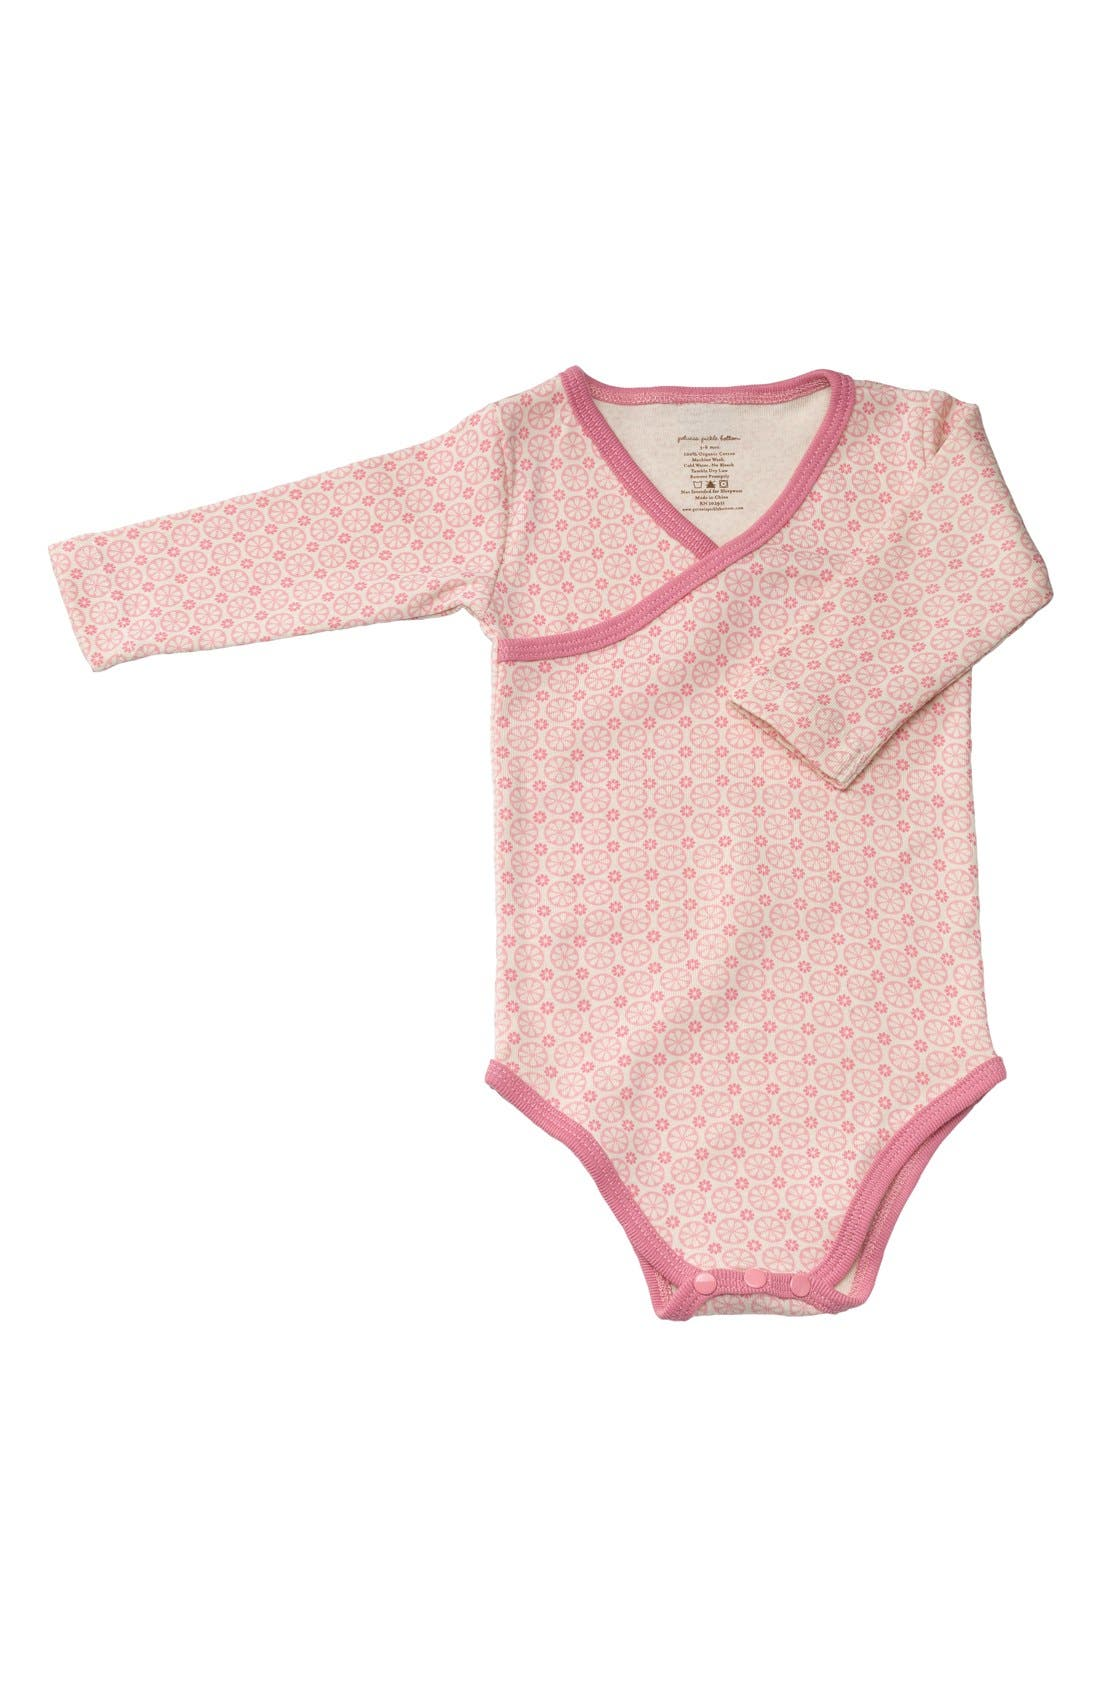 Main Image - Petunia Pickle Bottom Organic Cotton Long Sleeve Bodysuit (Baby Girls)